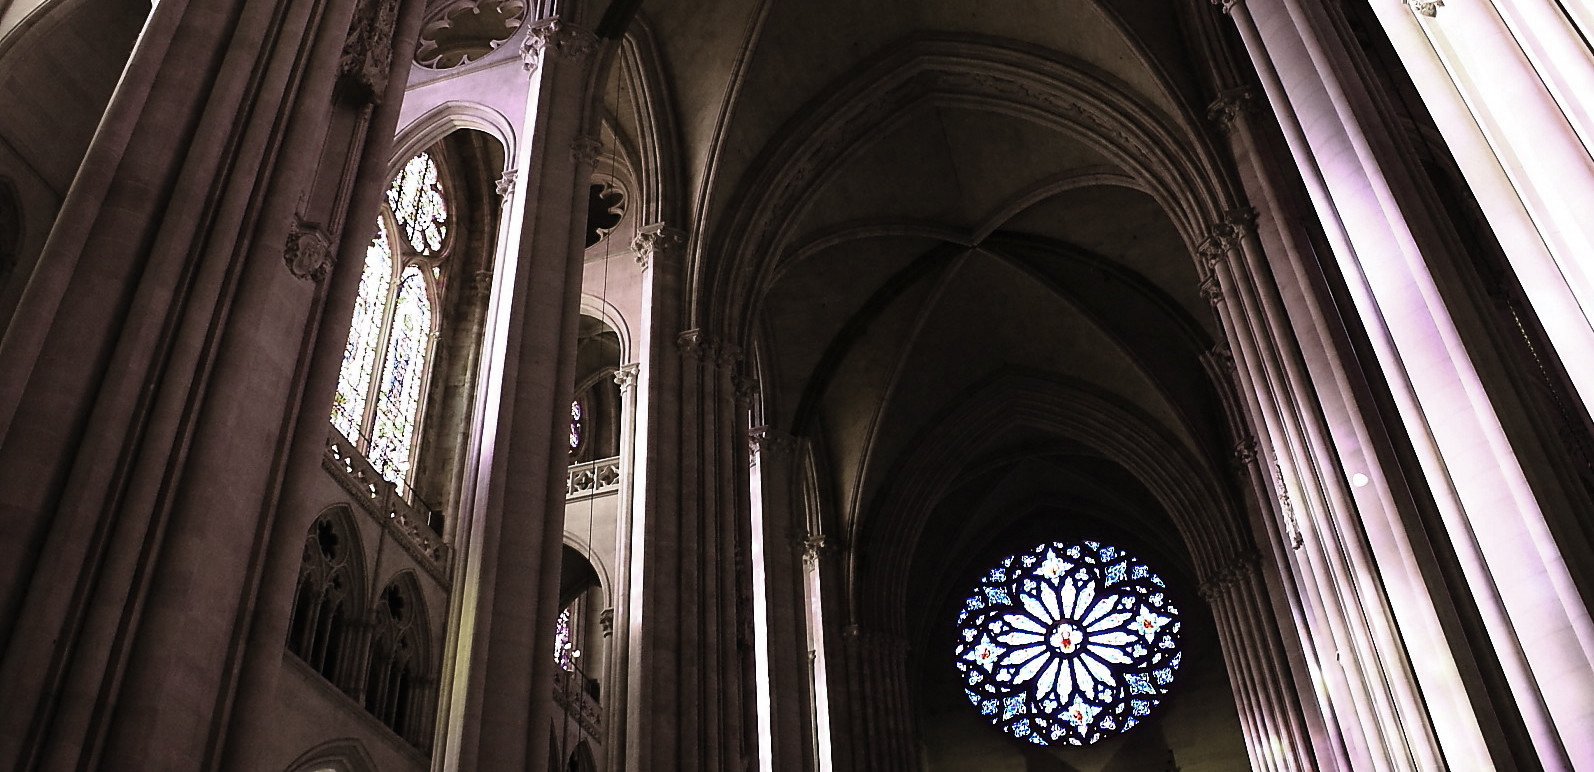 NAVE OF the Cathedral of Saint John the Divine, NYC.—COMPLETED 1941